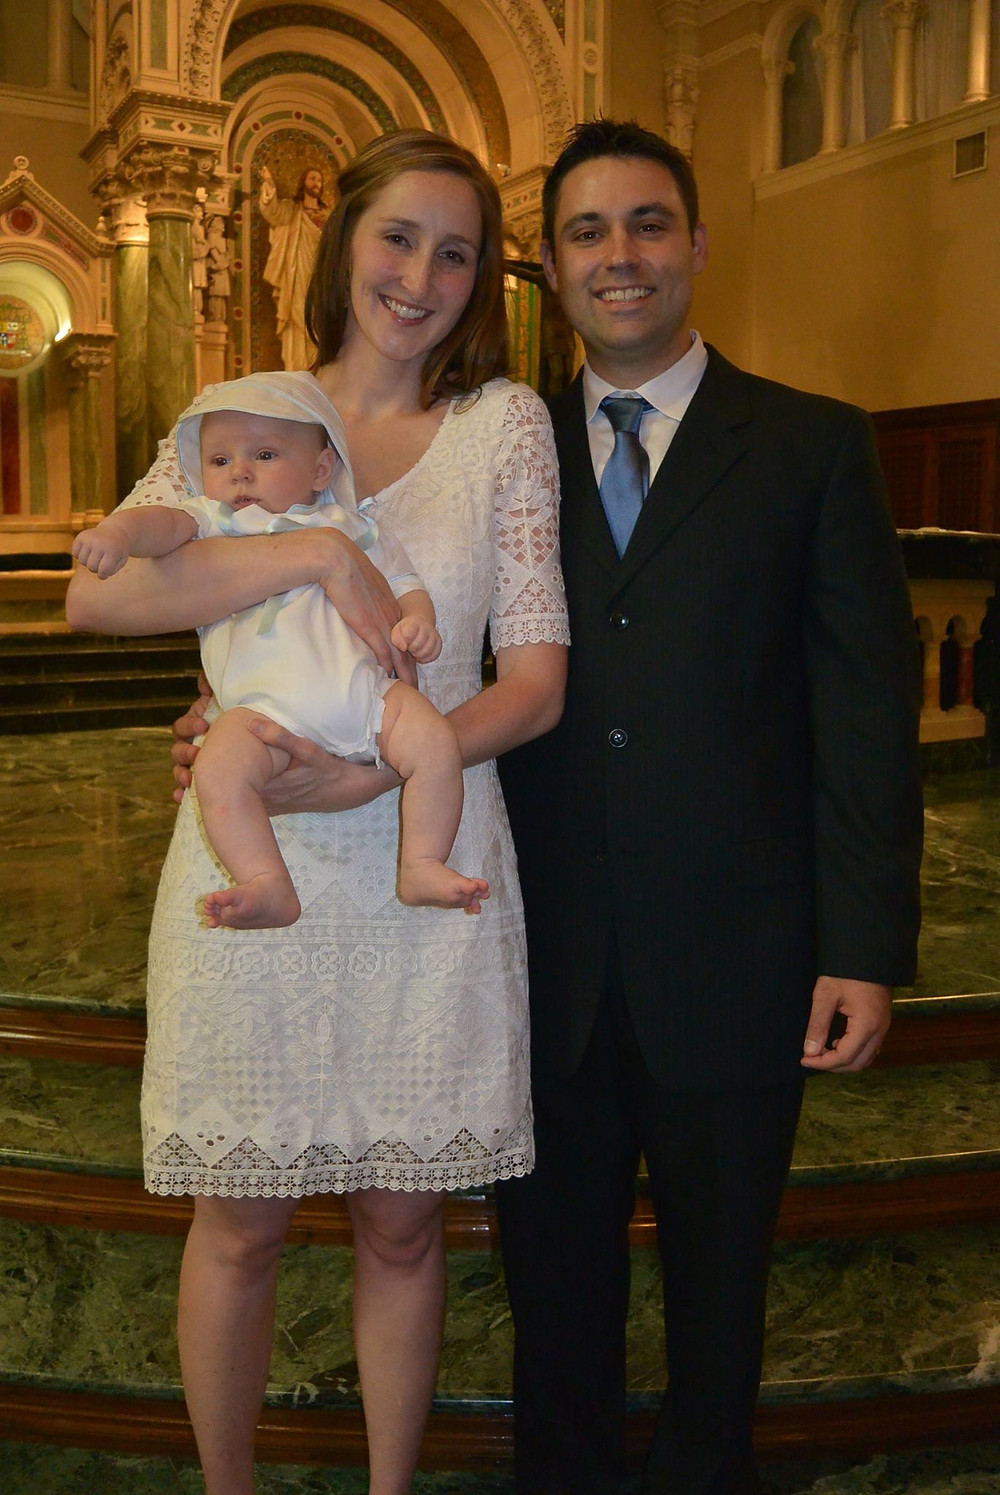 Diana with her husband celebrating their son's baptism.